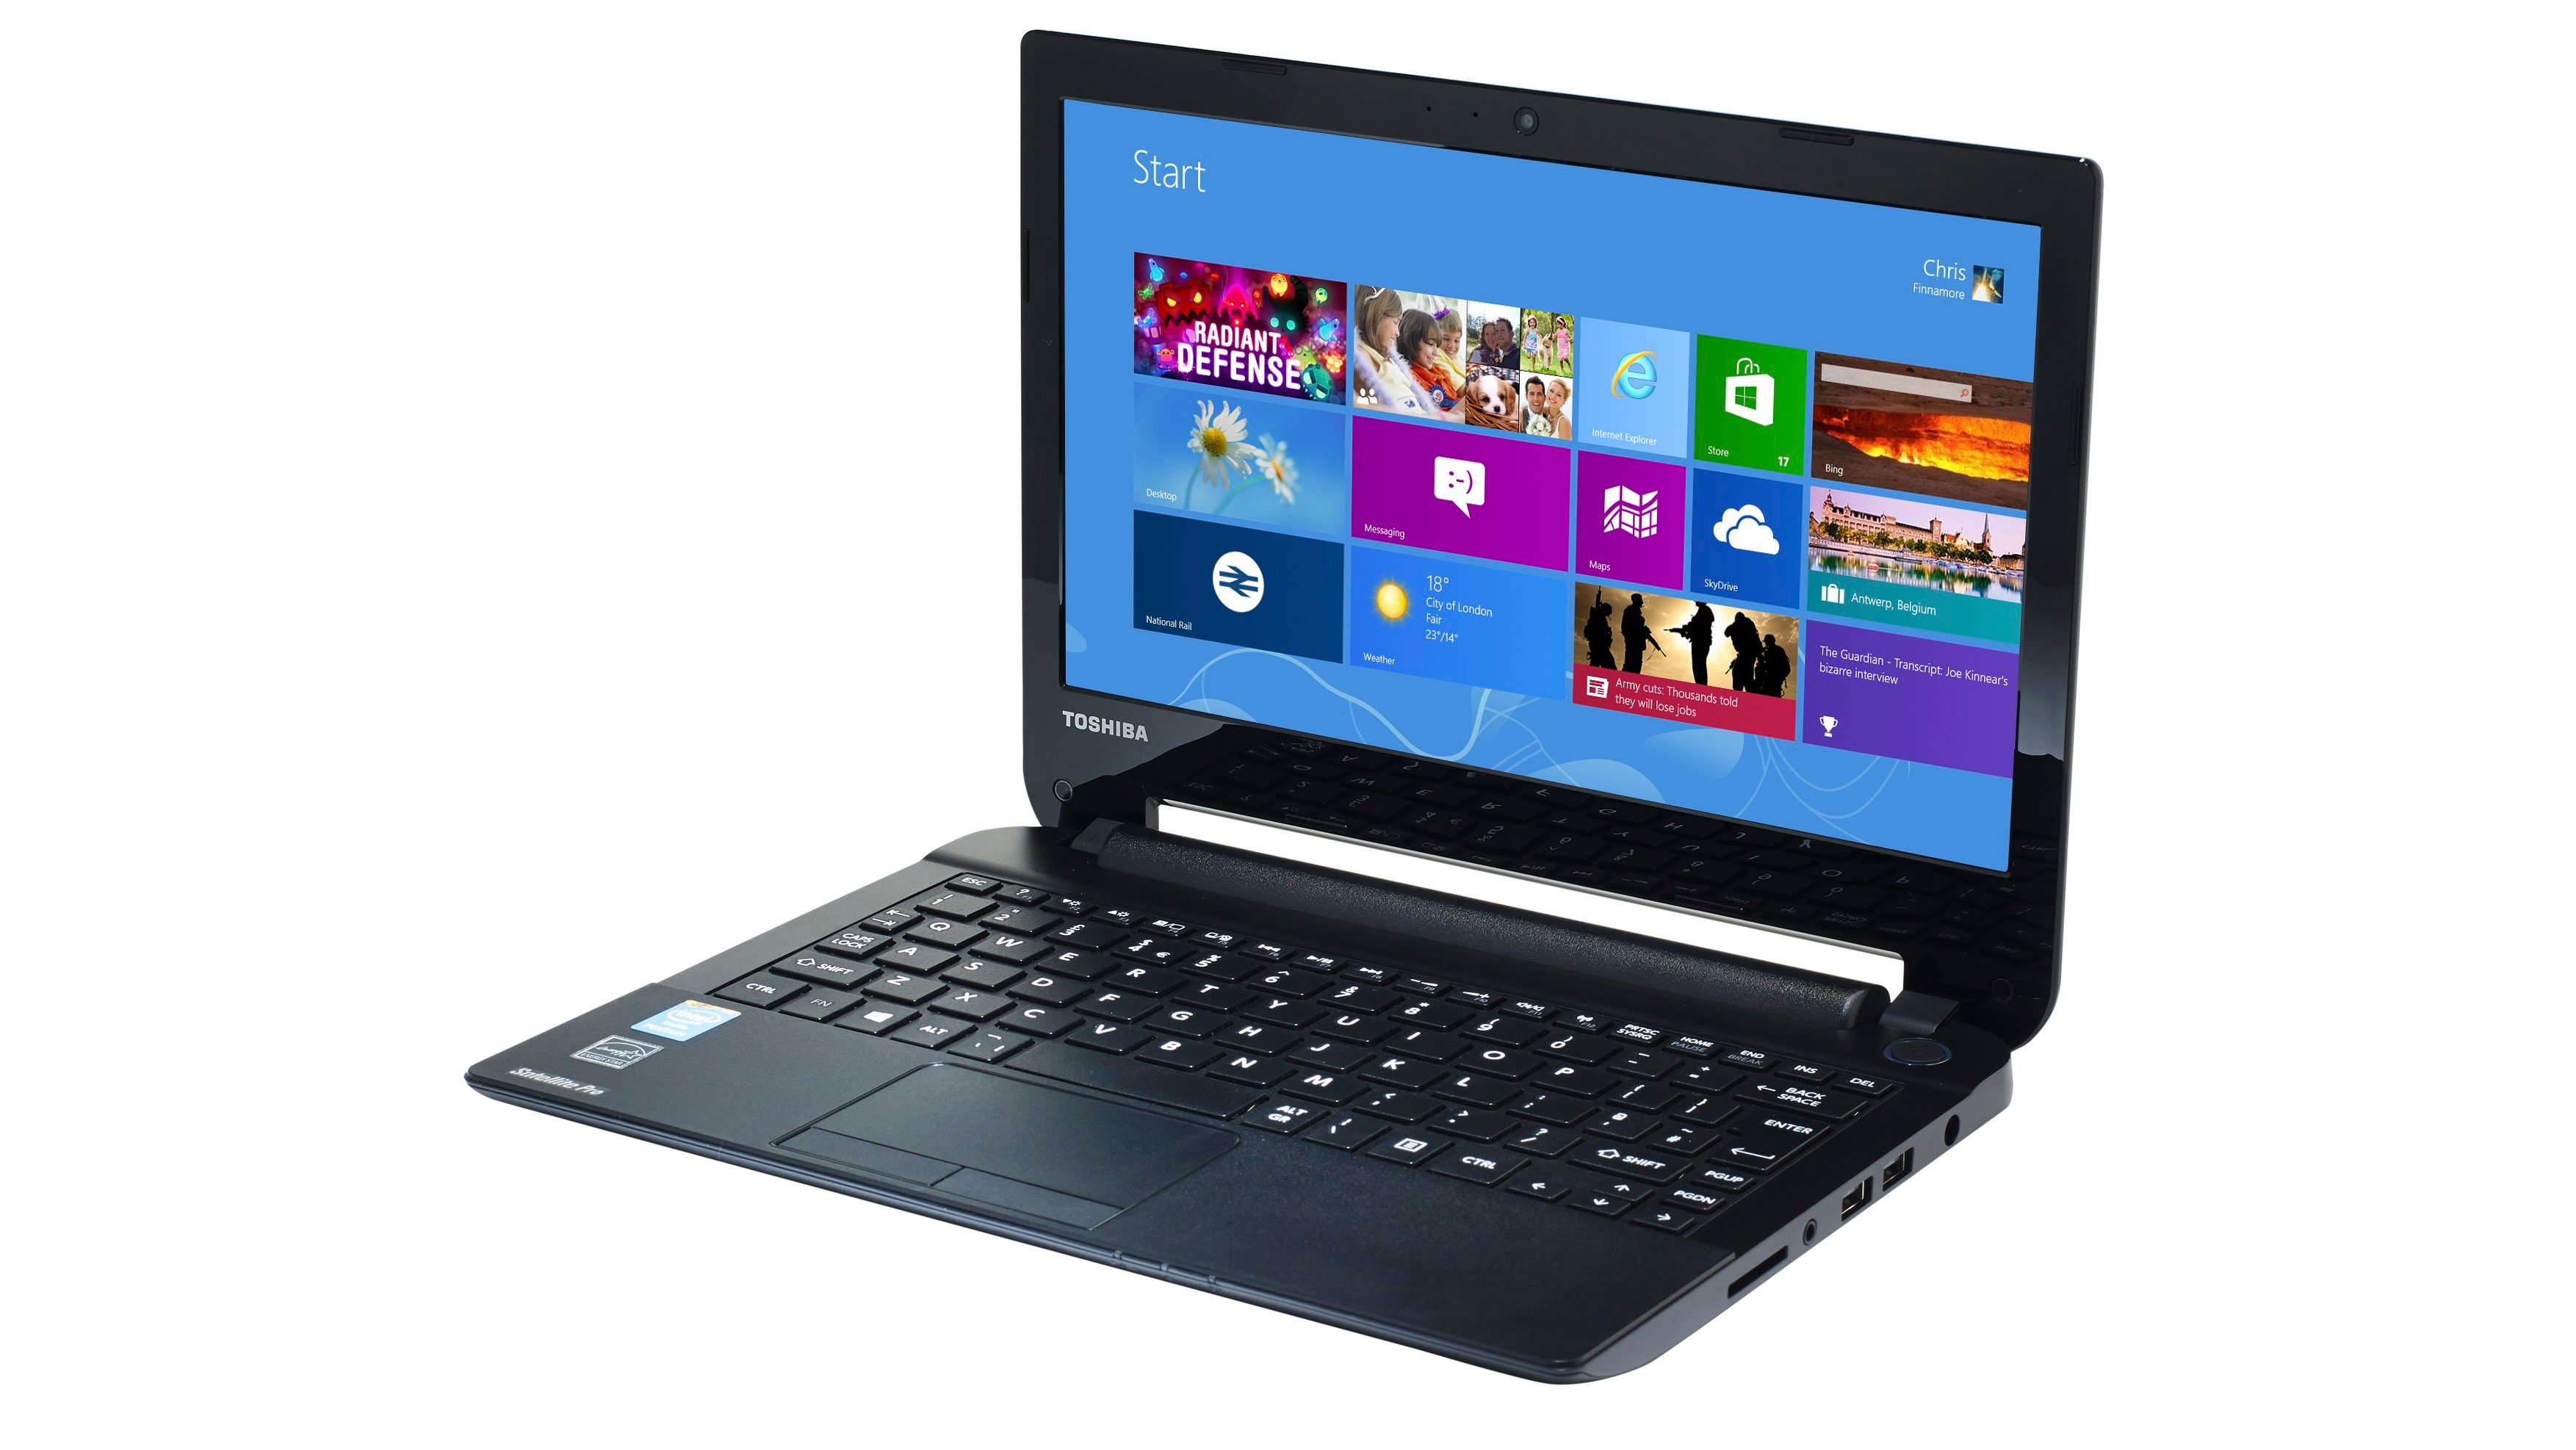 TOSHIBA SATELLITE NB10 WINDOWS 7 DRIVERS DOWNLOAD